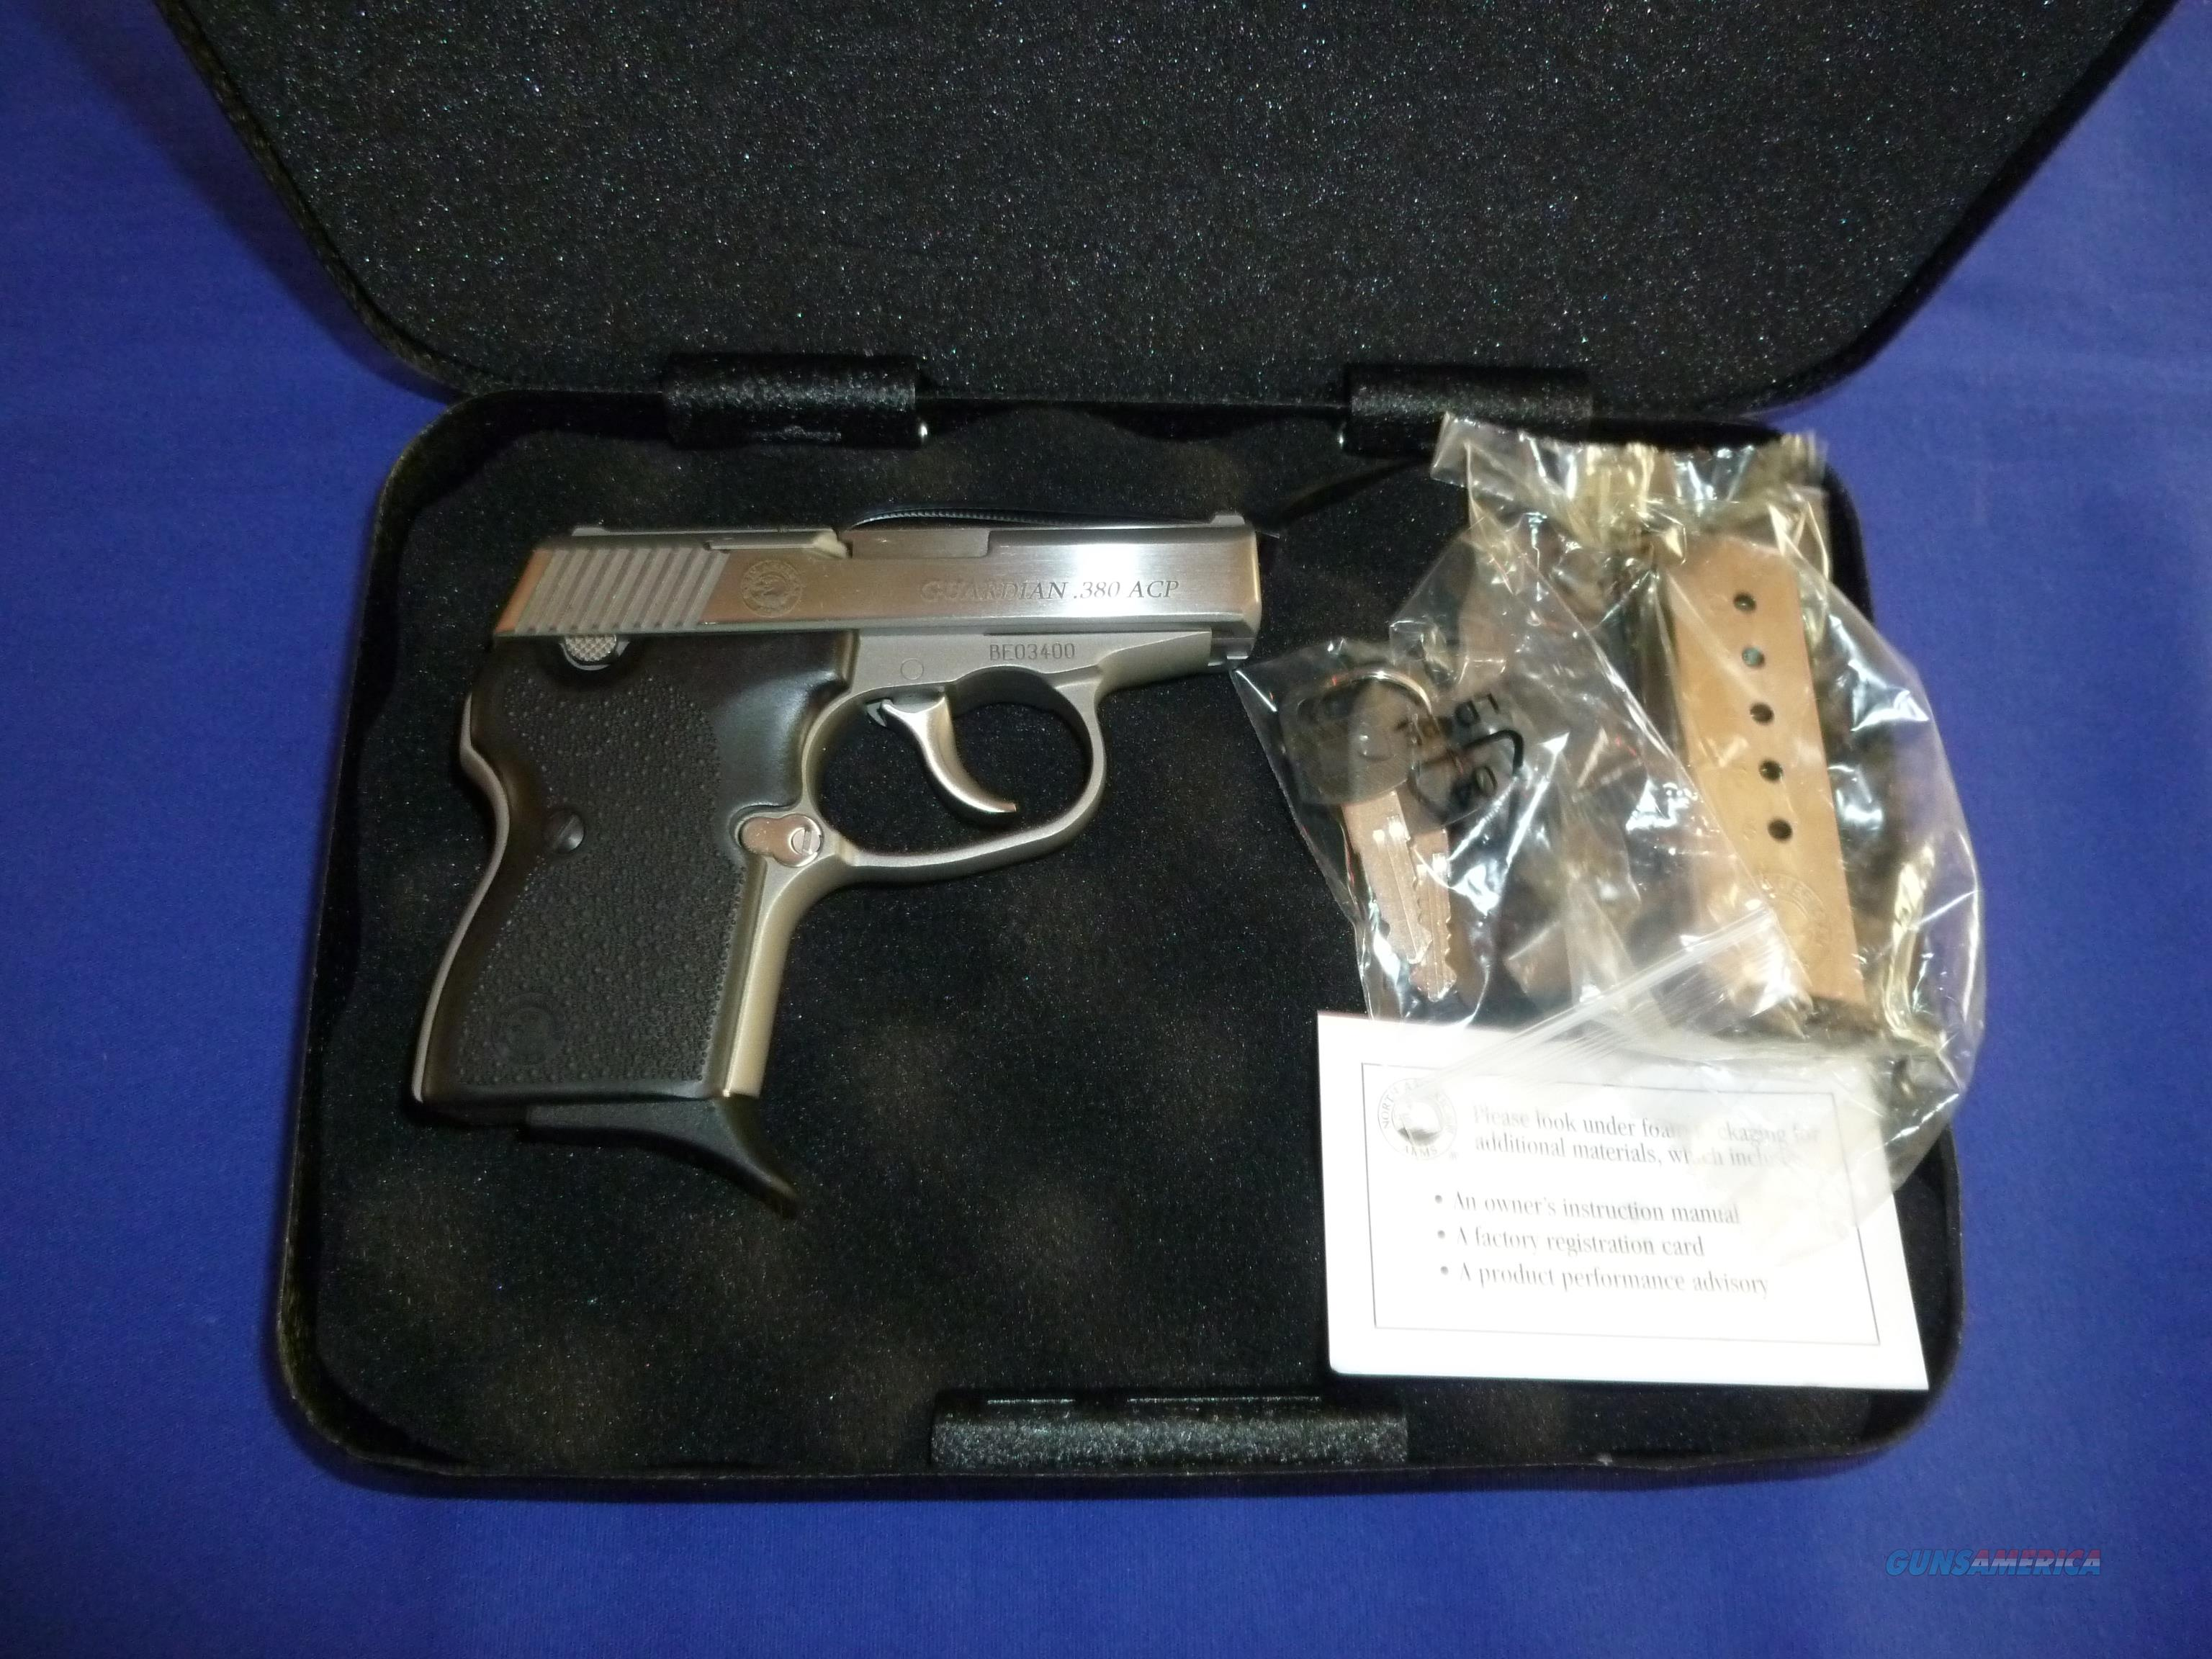 NORTH AMERICAN ARMS GUARDIAN 380 ACP PISTOL NEW!  Guns > Pistols > North American Arms Pistols